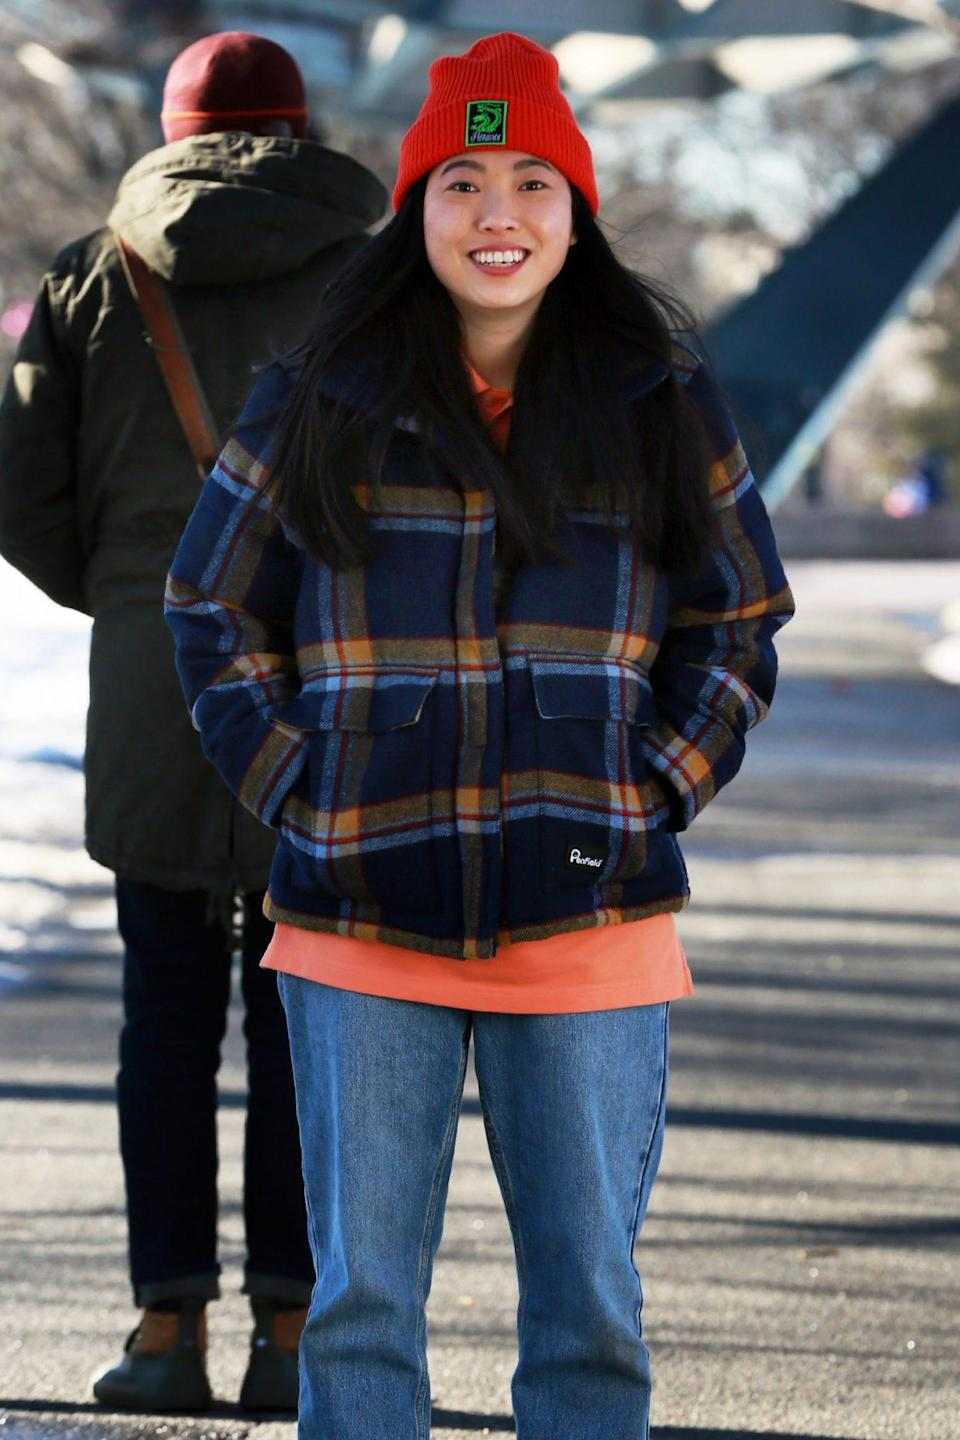 <p>Another day, another shoot for Awkwafina, who continues filming <em>Awkwafina Is Nora from Queens</em> in New York City on Wednesday.</p>